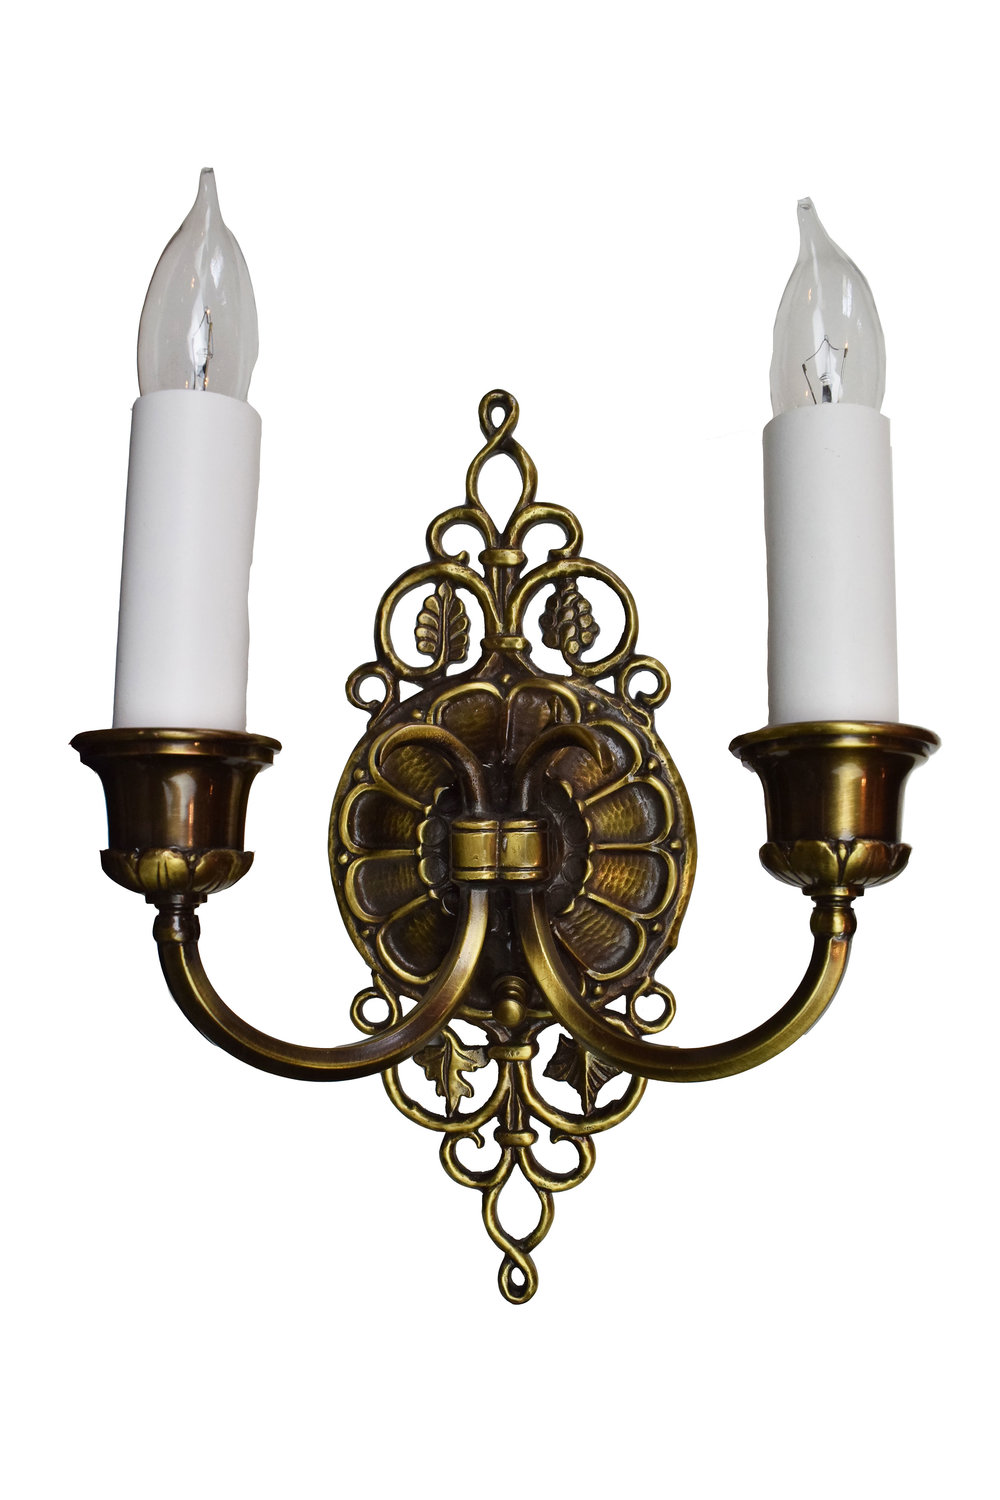 47017-oscar-bach-2-arm-sconce-main.jpg